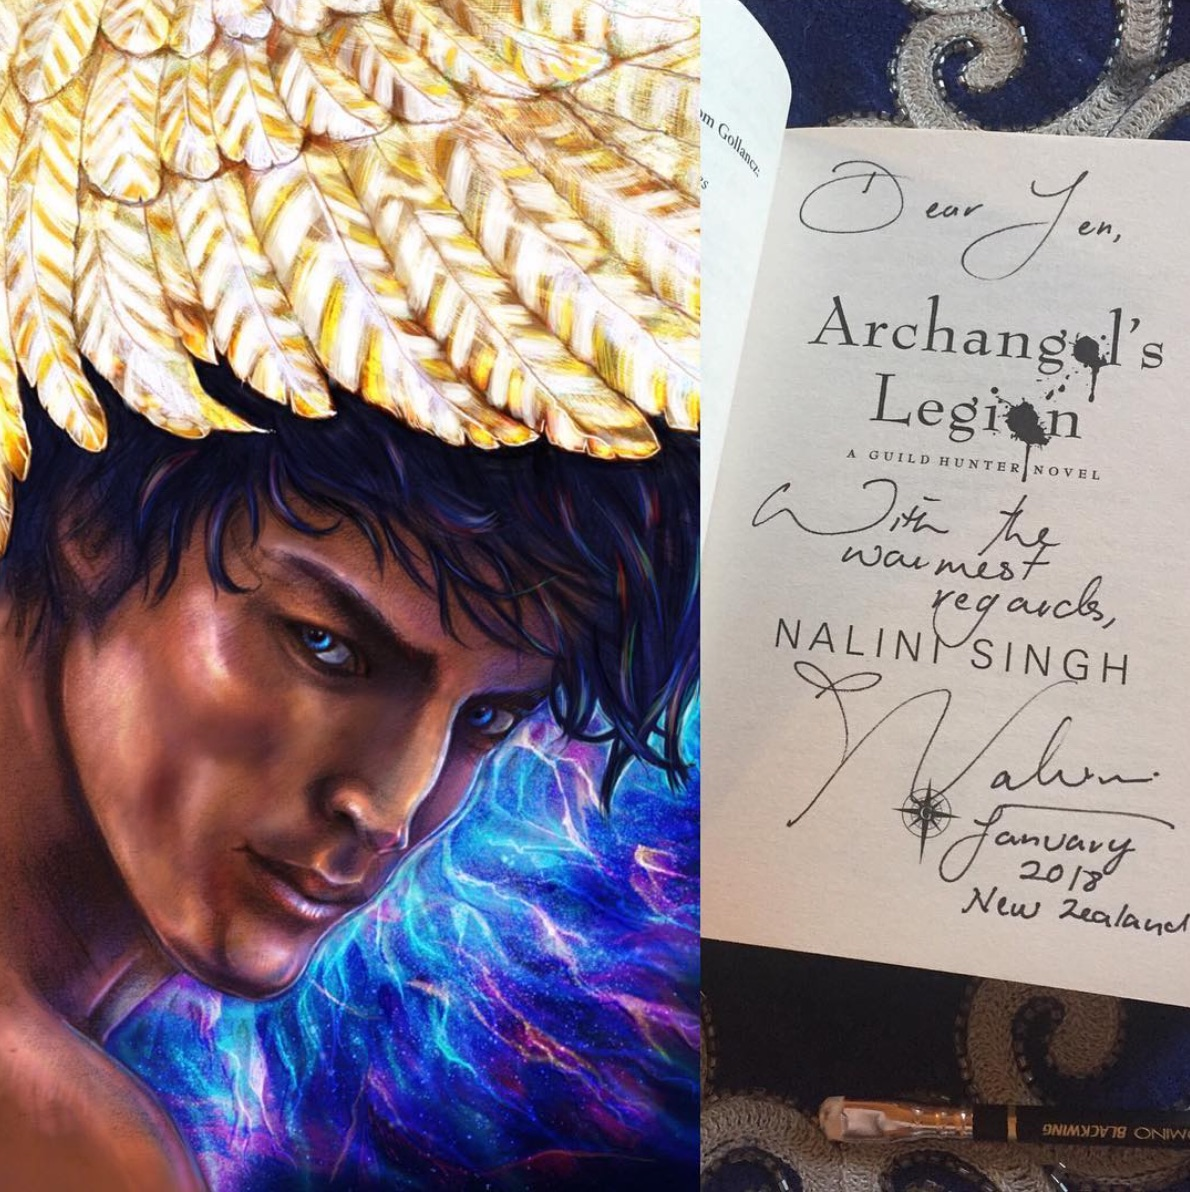 Major shoutout from one of my fav authors - I couldn't resist doing a bit of fan art of one of my favourite author's book series. It was so amazing to trade an art print for a signed copy of her book! Check out Nalini's books here.